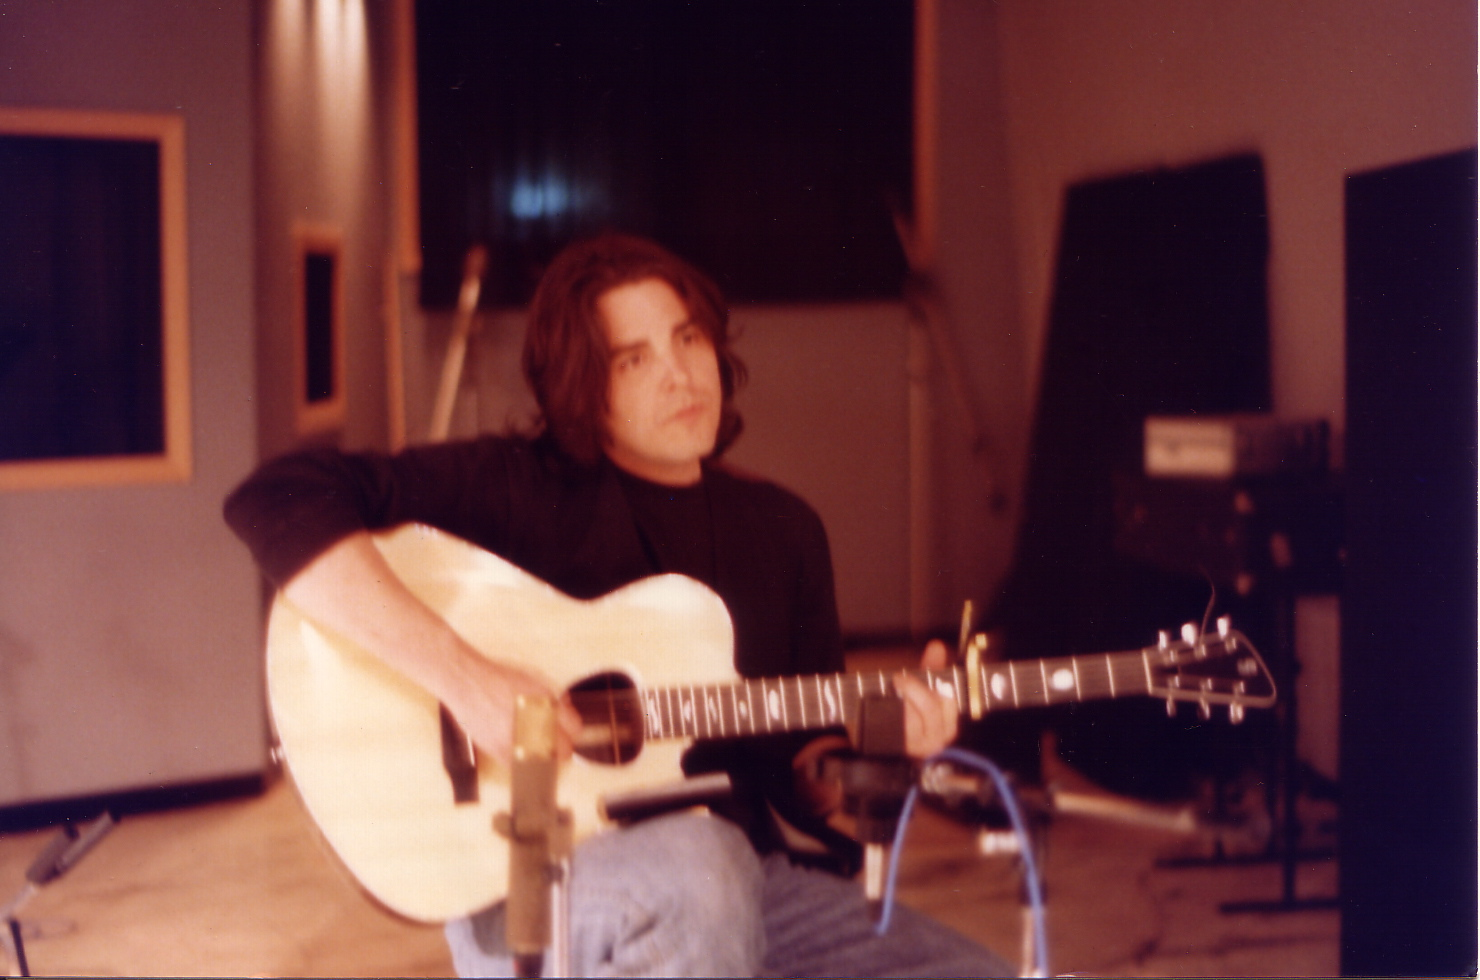 Studio - Boston, 1994